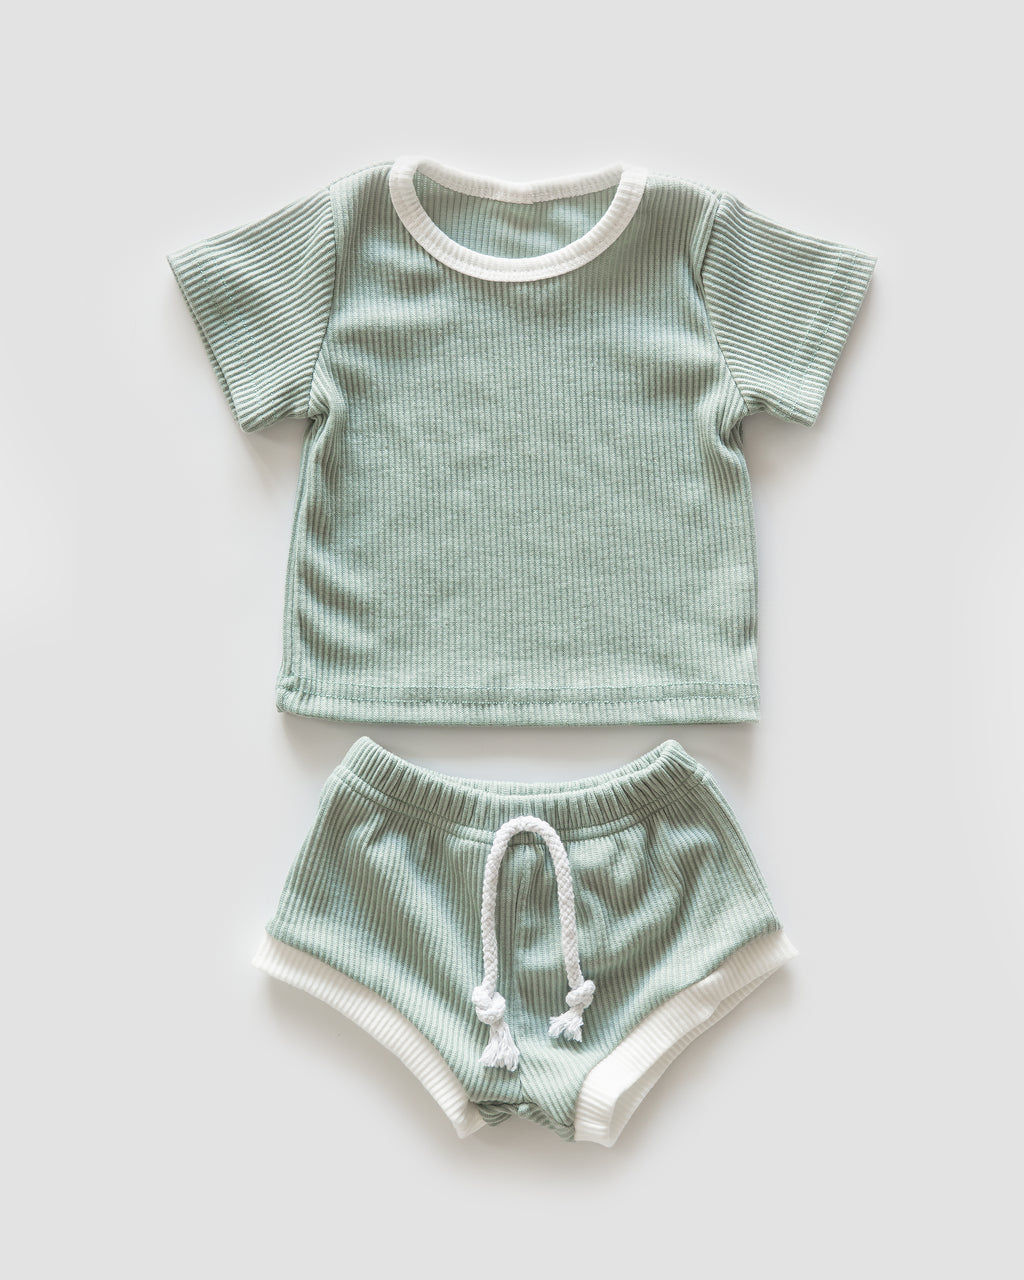 Ribbed Cozies in Seafoam & White - Reverie Threads